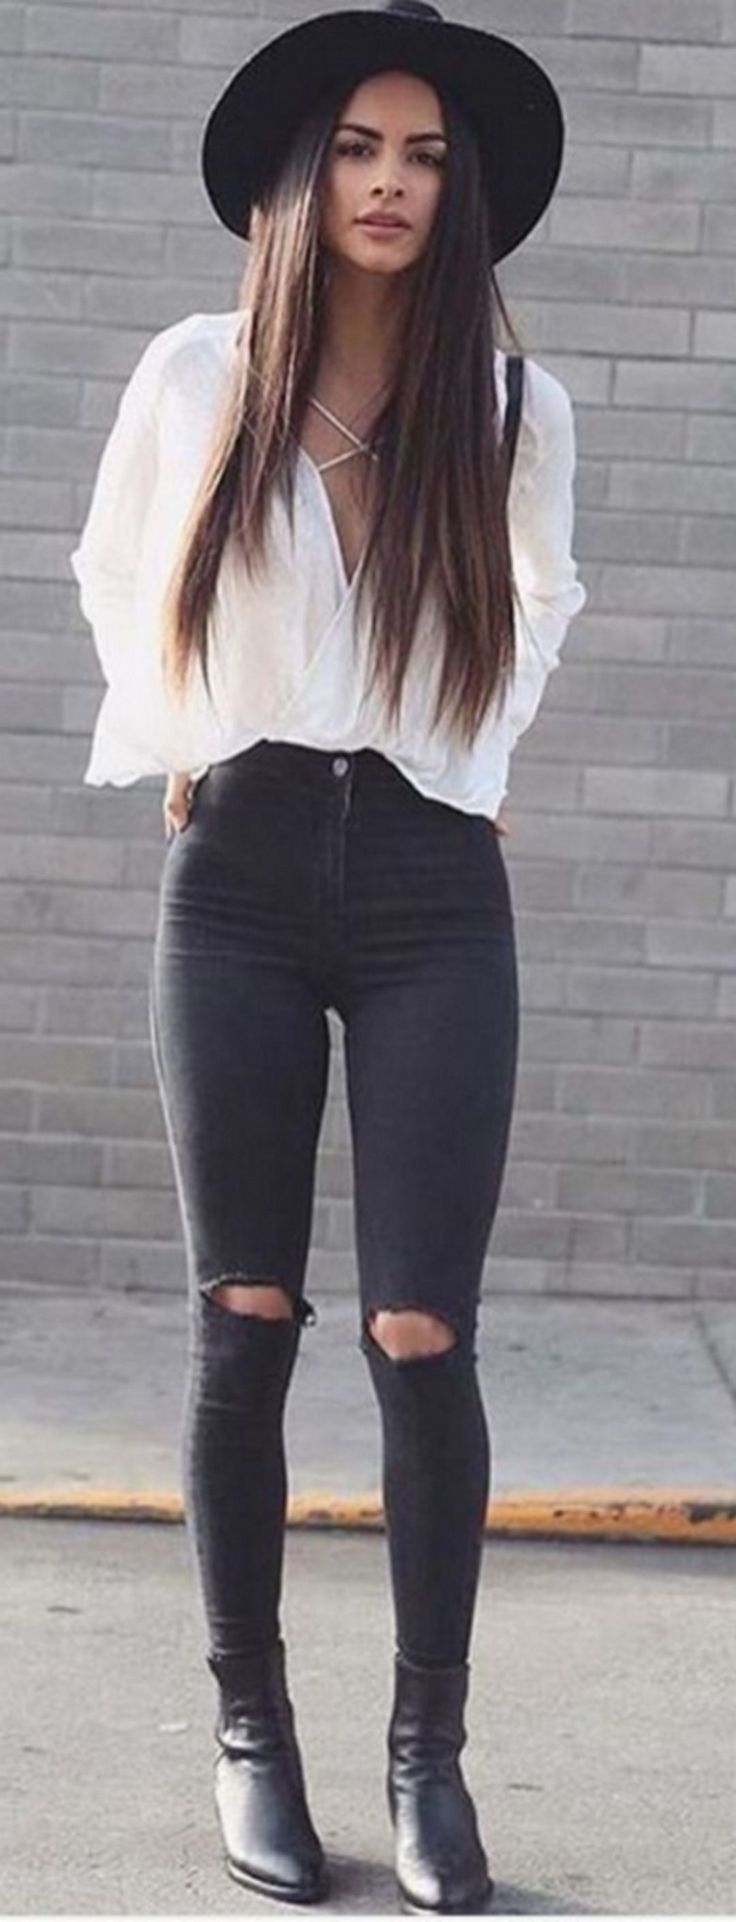 Best Comfortable Women Fall Outfits Ideas As Trend 2017 27 https://montenr.com/75-best-comfortable-women-fall-outfits-ideas-as-trend-2017/best-comfortable-women-fall-outfits-ideas-as-trend-2017-27/